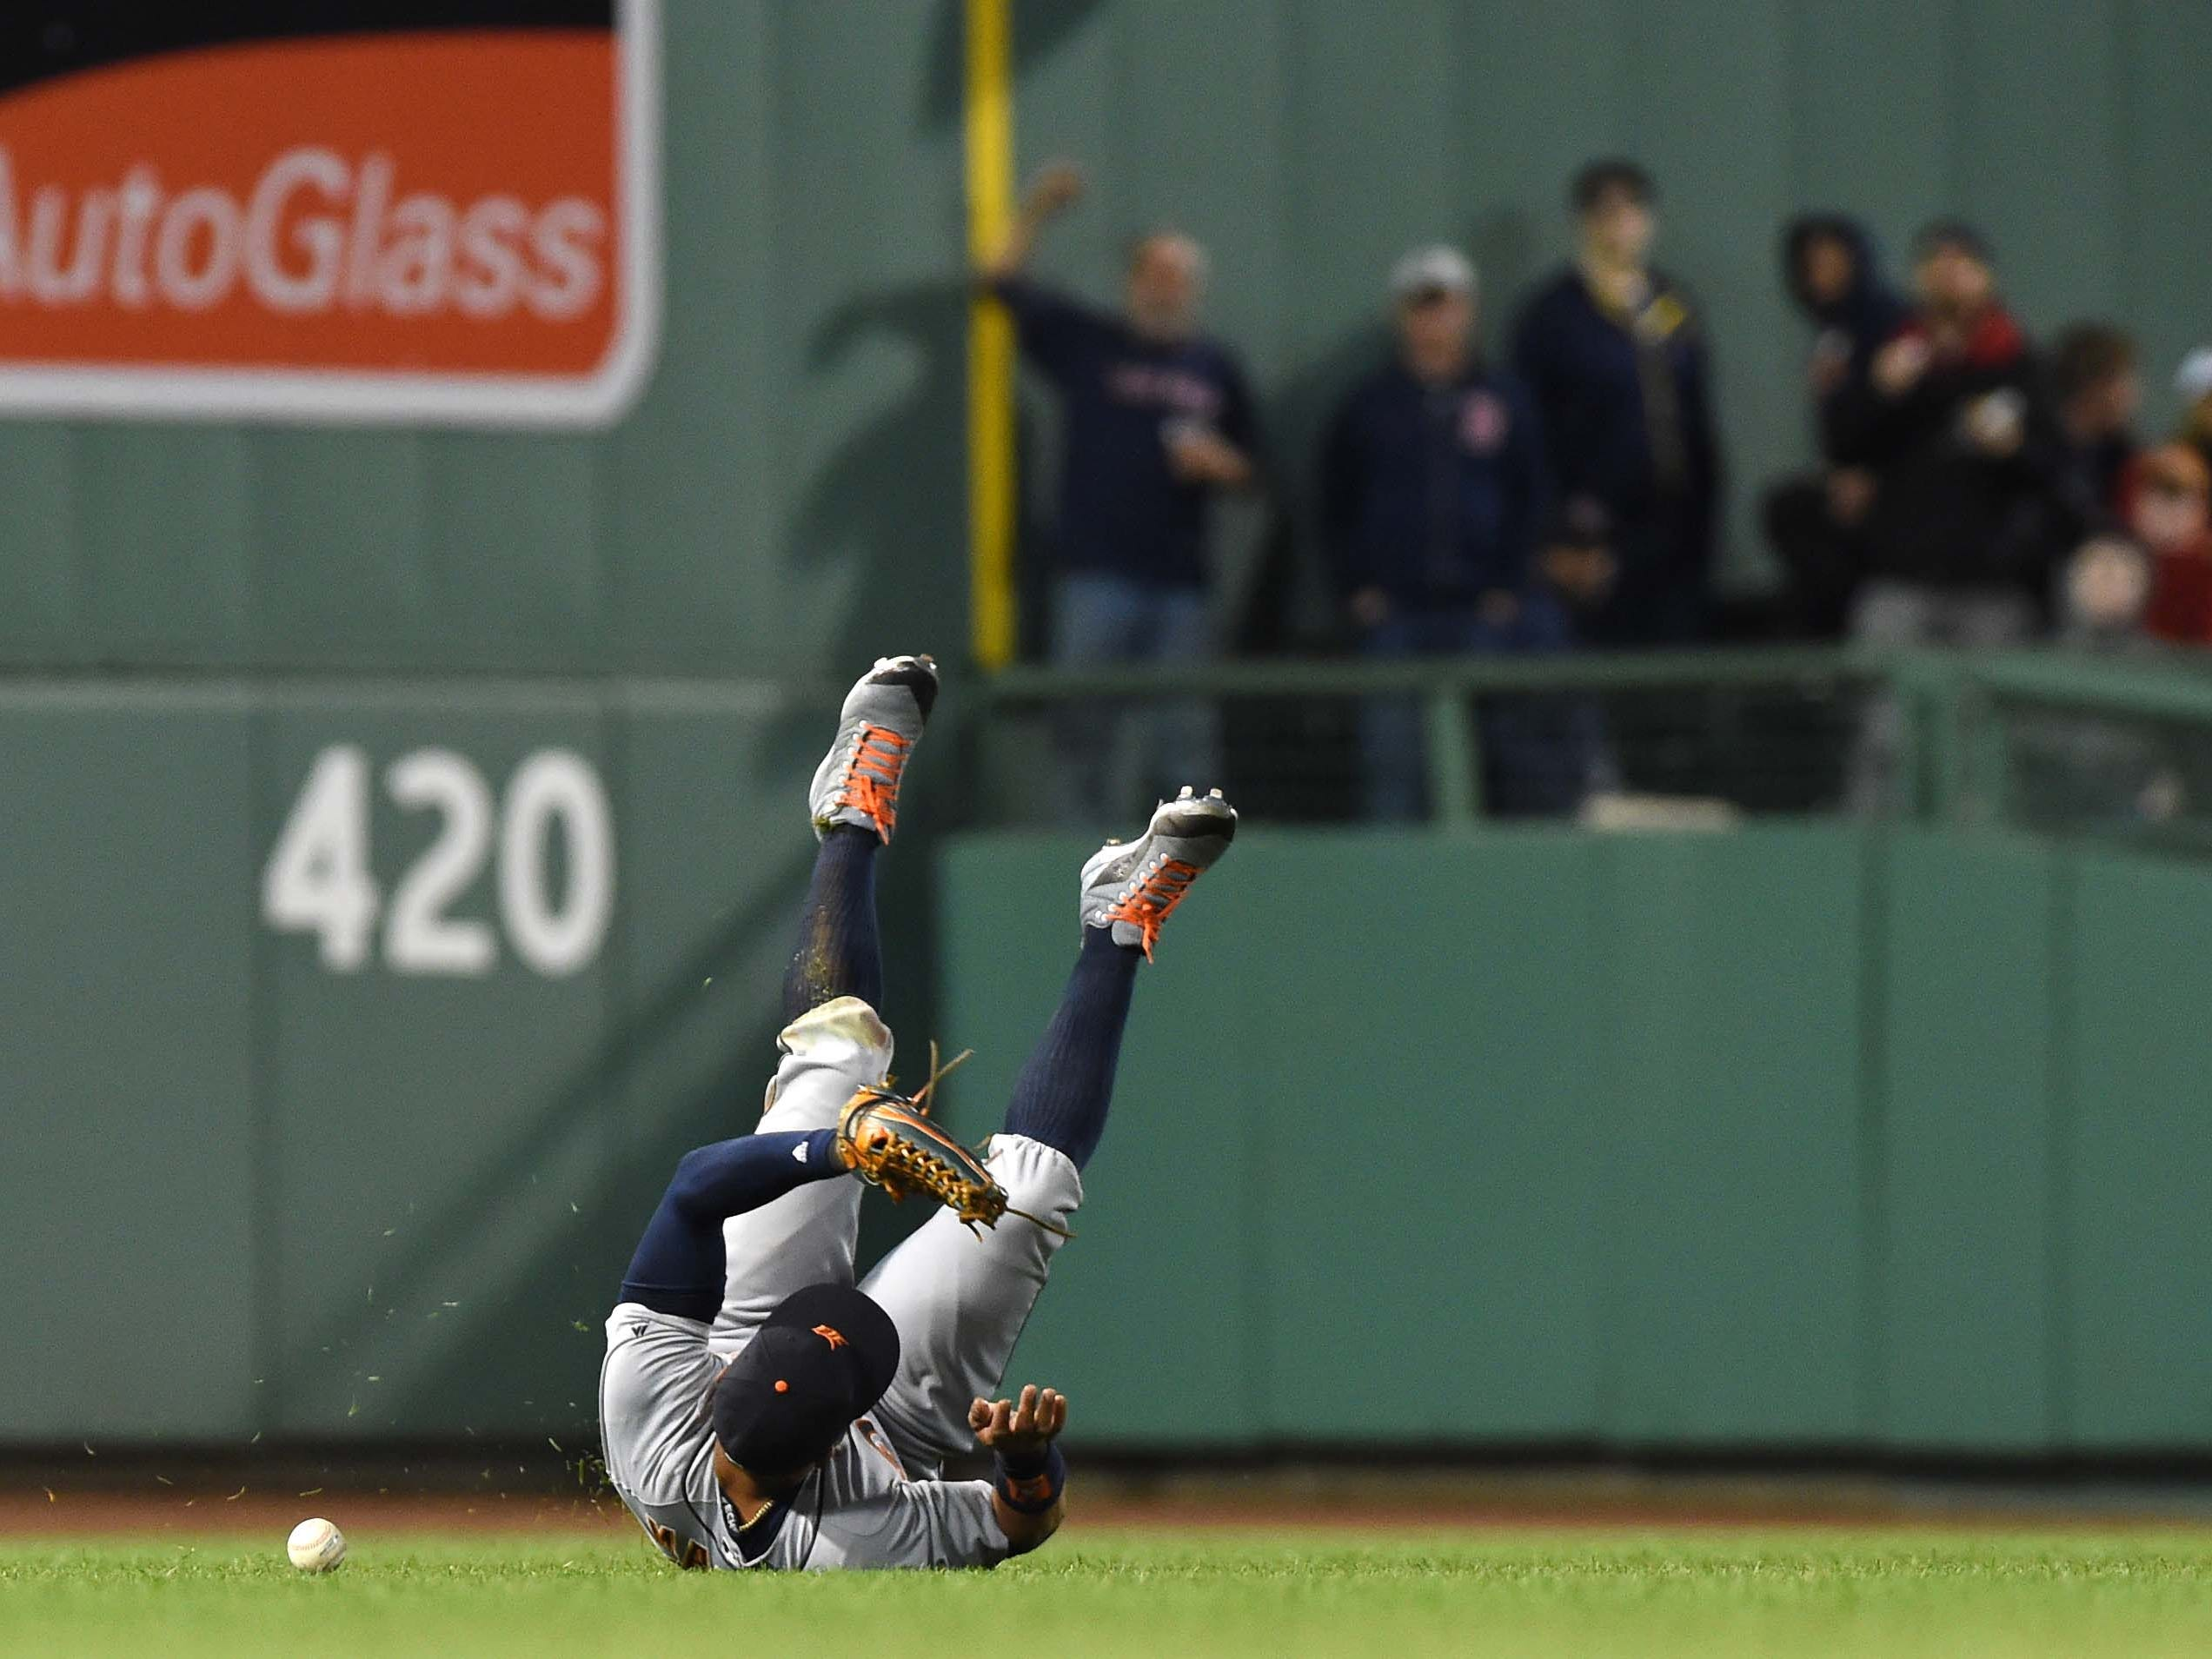 June 5 in Boston: Red Sox 6, Tigers 0. Center fielder Leonys Martin misplays the ball during the fifth inning at Fenway Park.